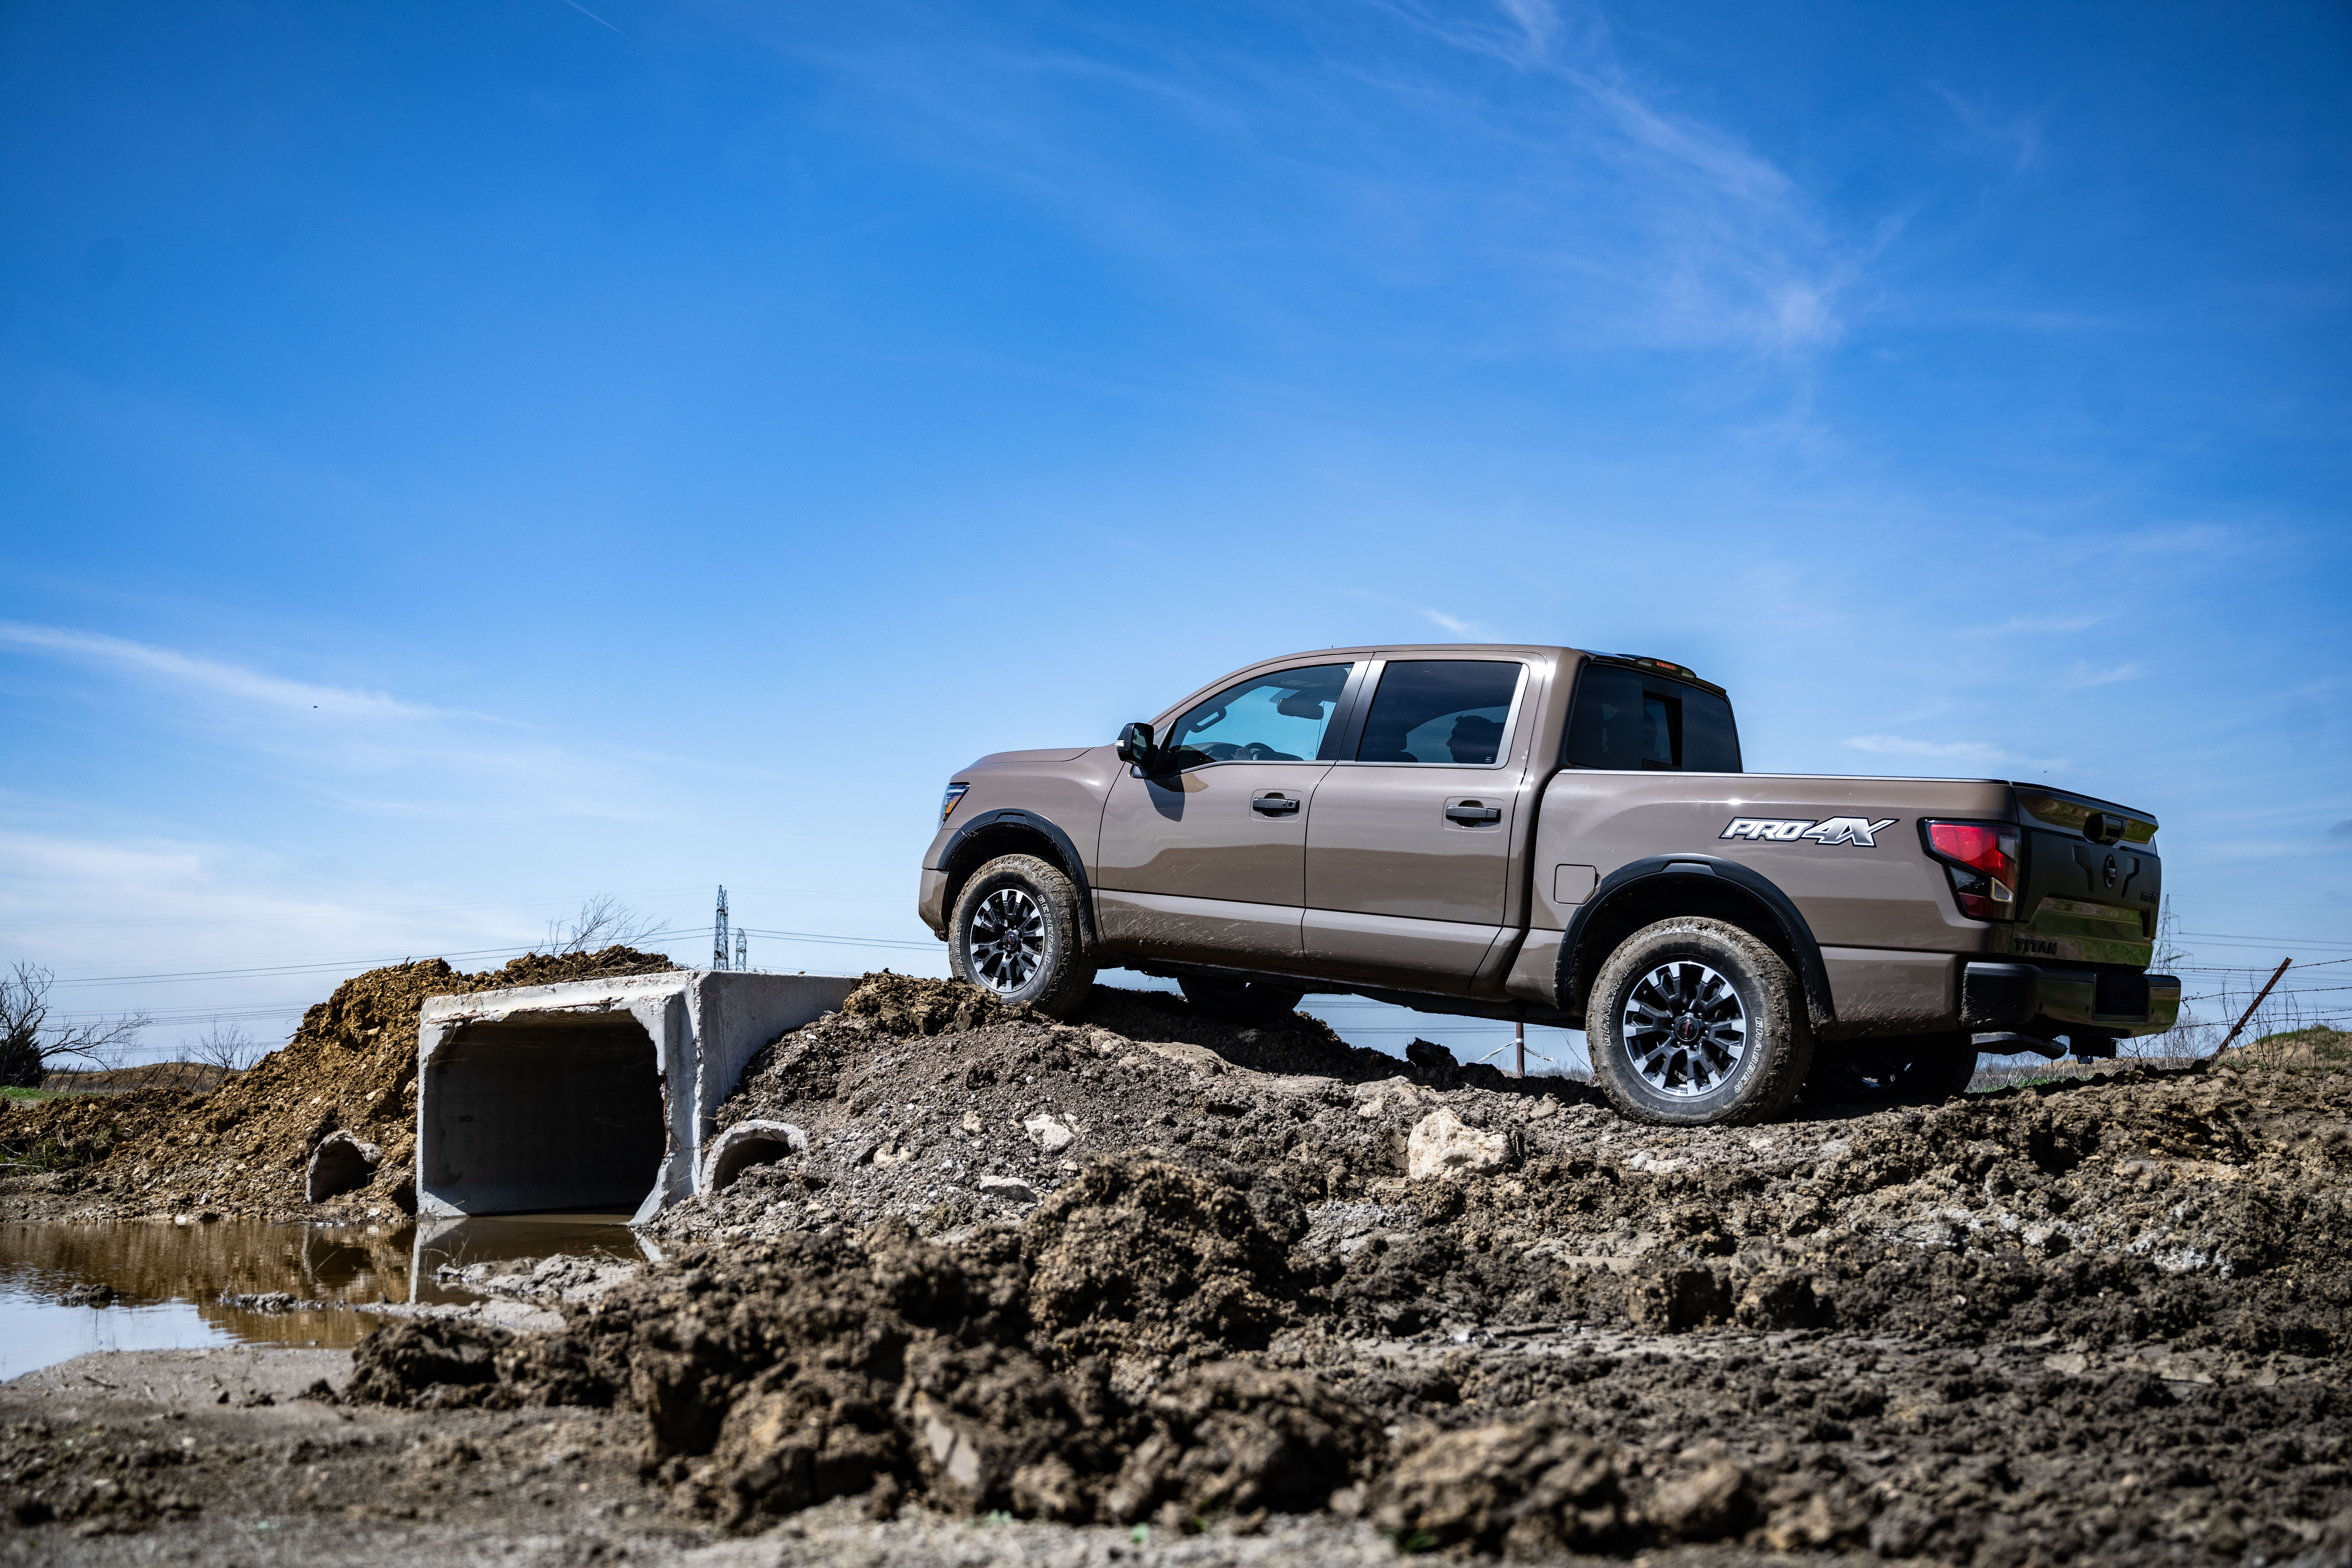 Off Road Updated And Made For Living A Texas Adventure In The 2020 Nissan Titan In 2020 Nissan Titan Nissan Texas Adventure